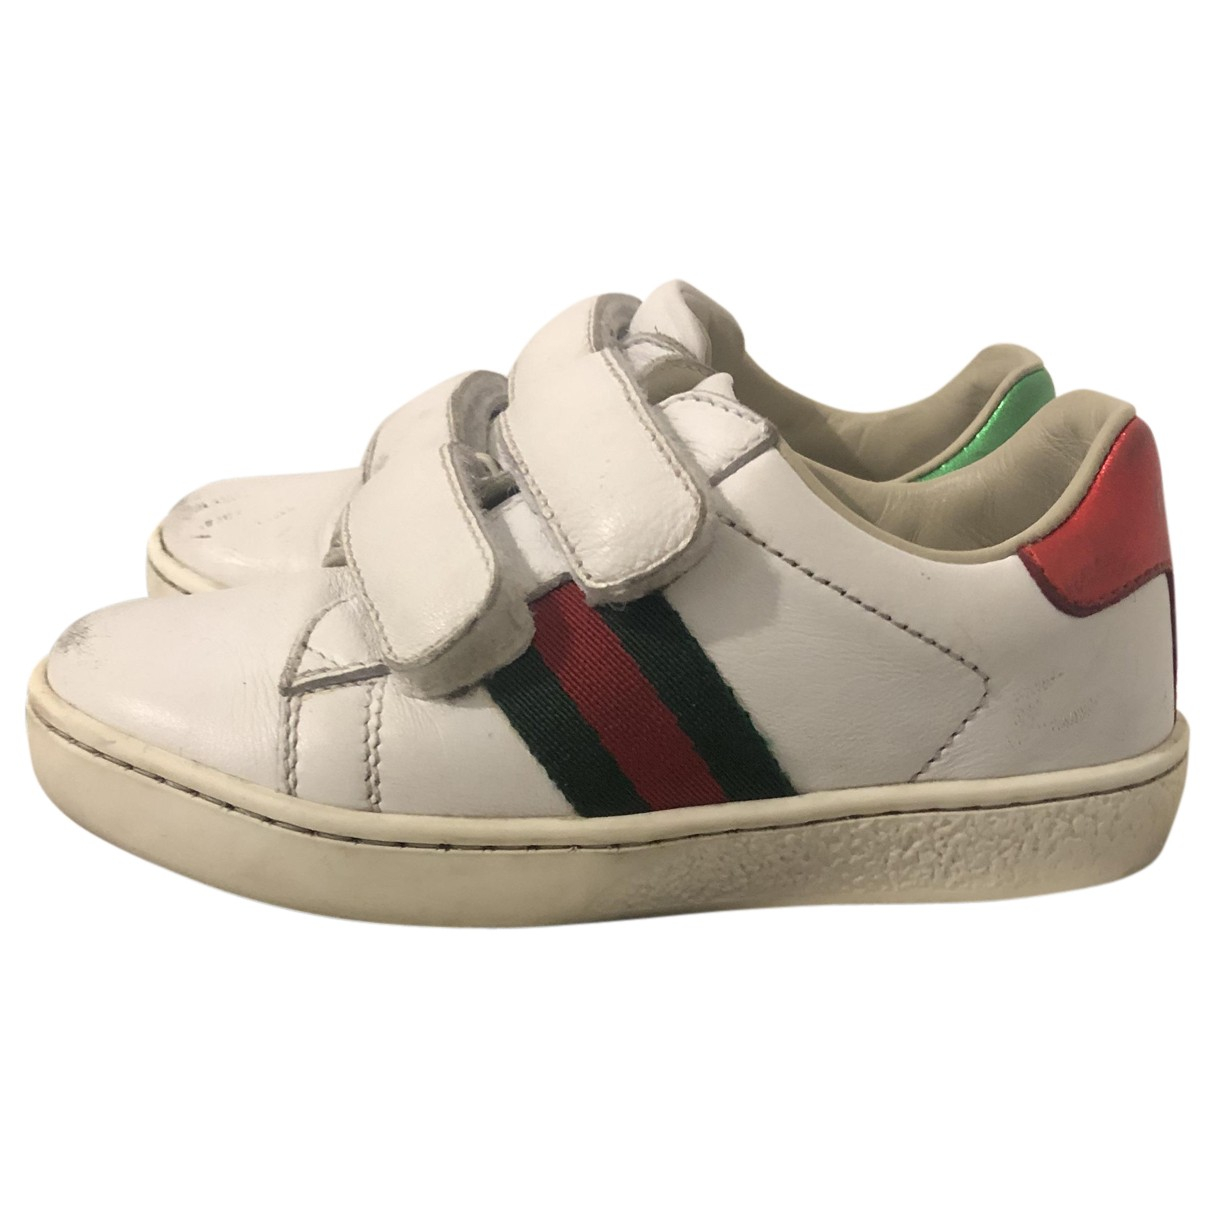 Gucci N White Leather Trainers for Kids 24 FR